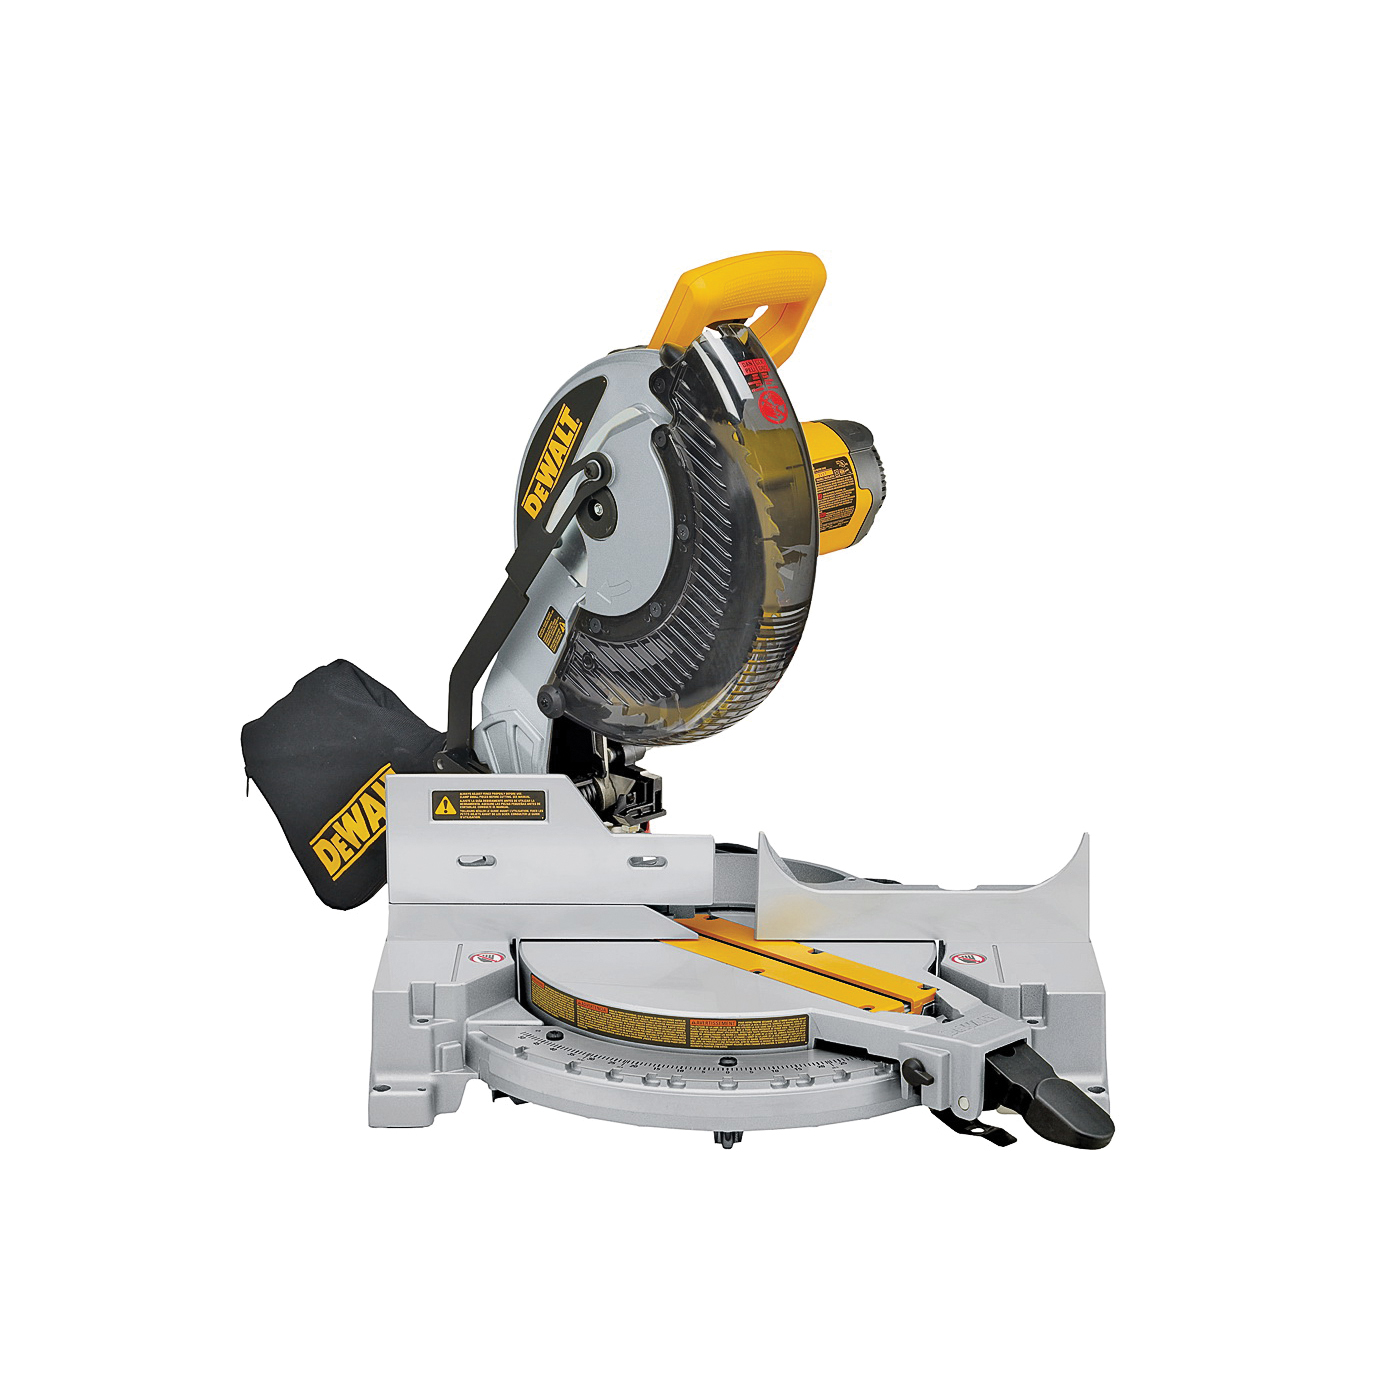 Picture of DeWALT DW713 Miter Saw, 120 V, 15 A, 10 in Dia Blade, 2 x 6 in 45 deg, 4 x 4 in at 90 deg Cutting Capacity